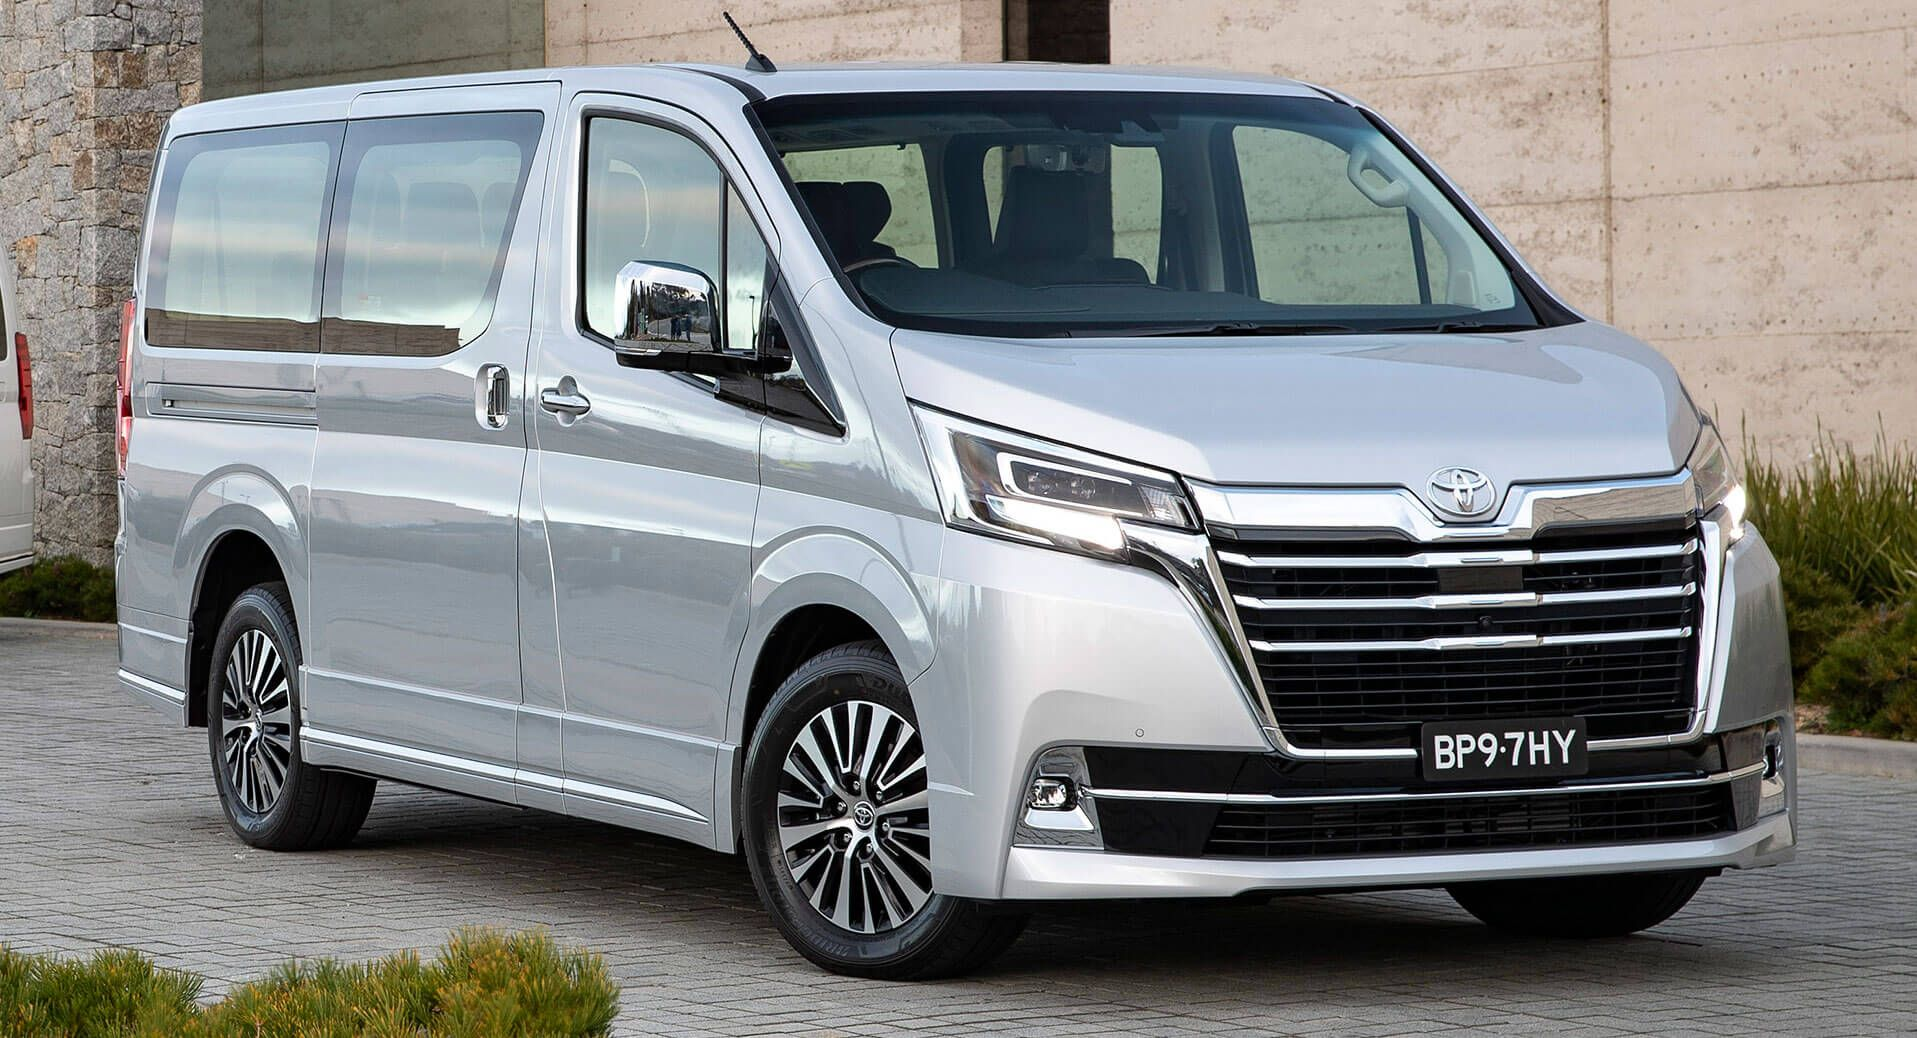 2020 Toyota Granvia Mpv Gets Aud 62 990 Starting Price Australia Newcars Prices Reports Toyota Toyotagranvia Cars Carsofins Toyota New Cars Family Car